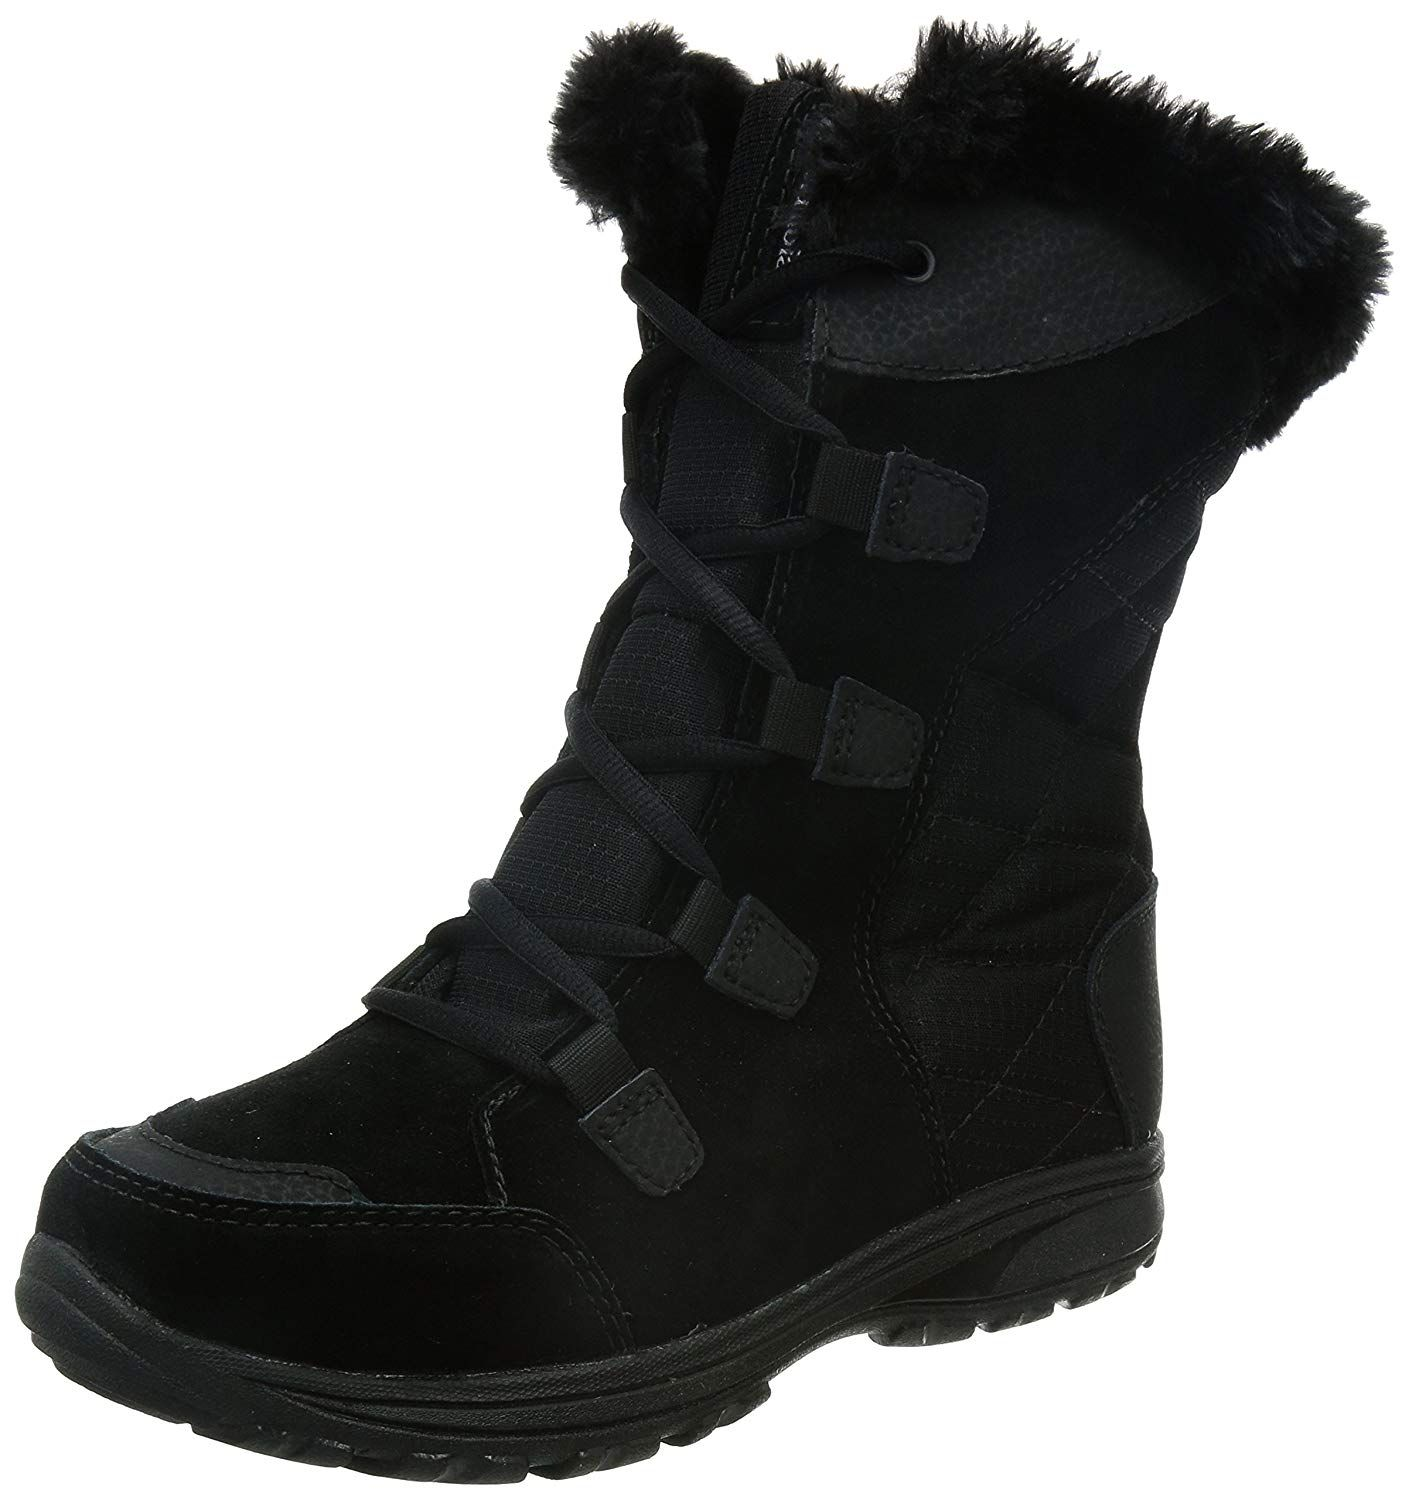 9adb9a2a9b4c0 ... lightweight, and ready for winter's worst, the women's ice maiden boot  lets you storm the snow in style thanks to toasty insulation, a waterproof  co